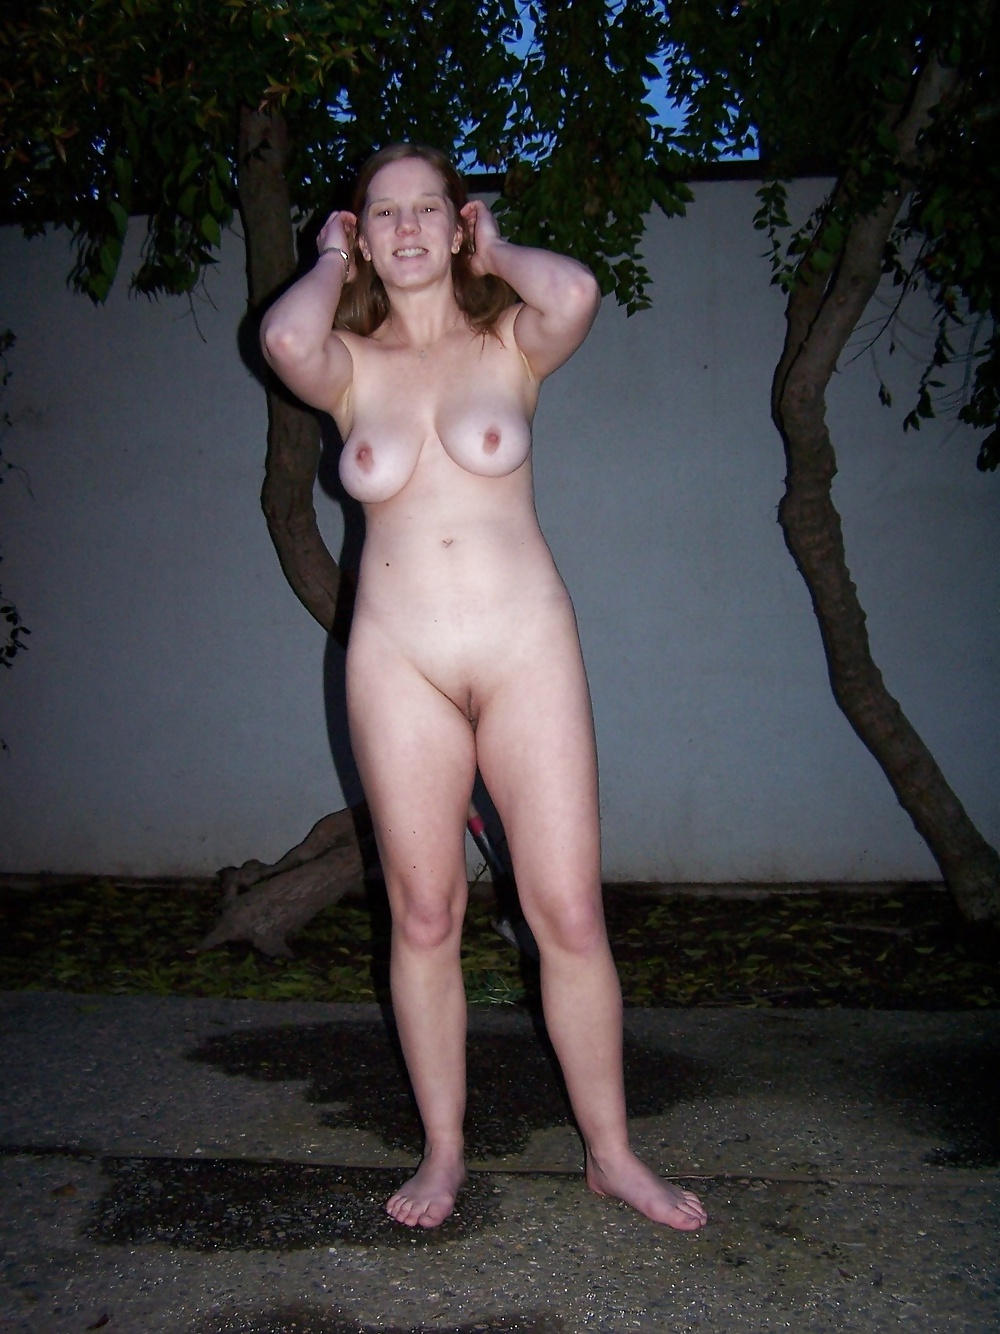 Full frontal nudity wives — pic 11